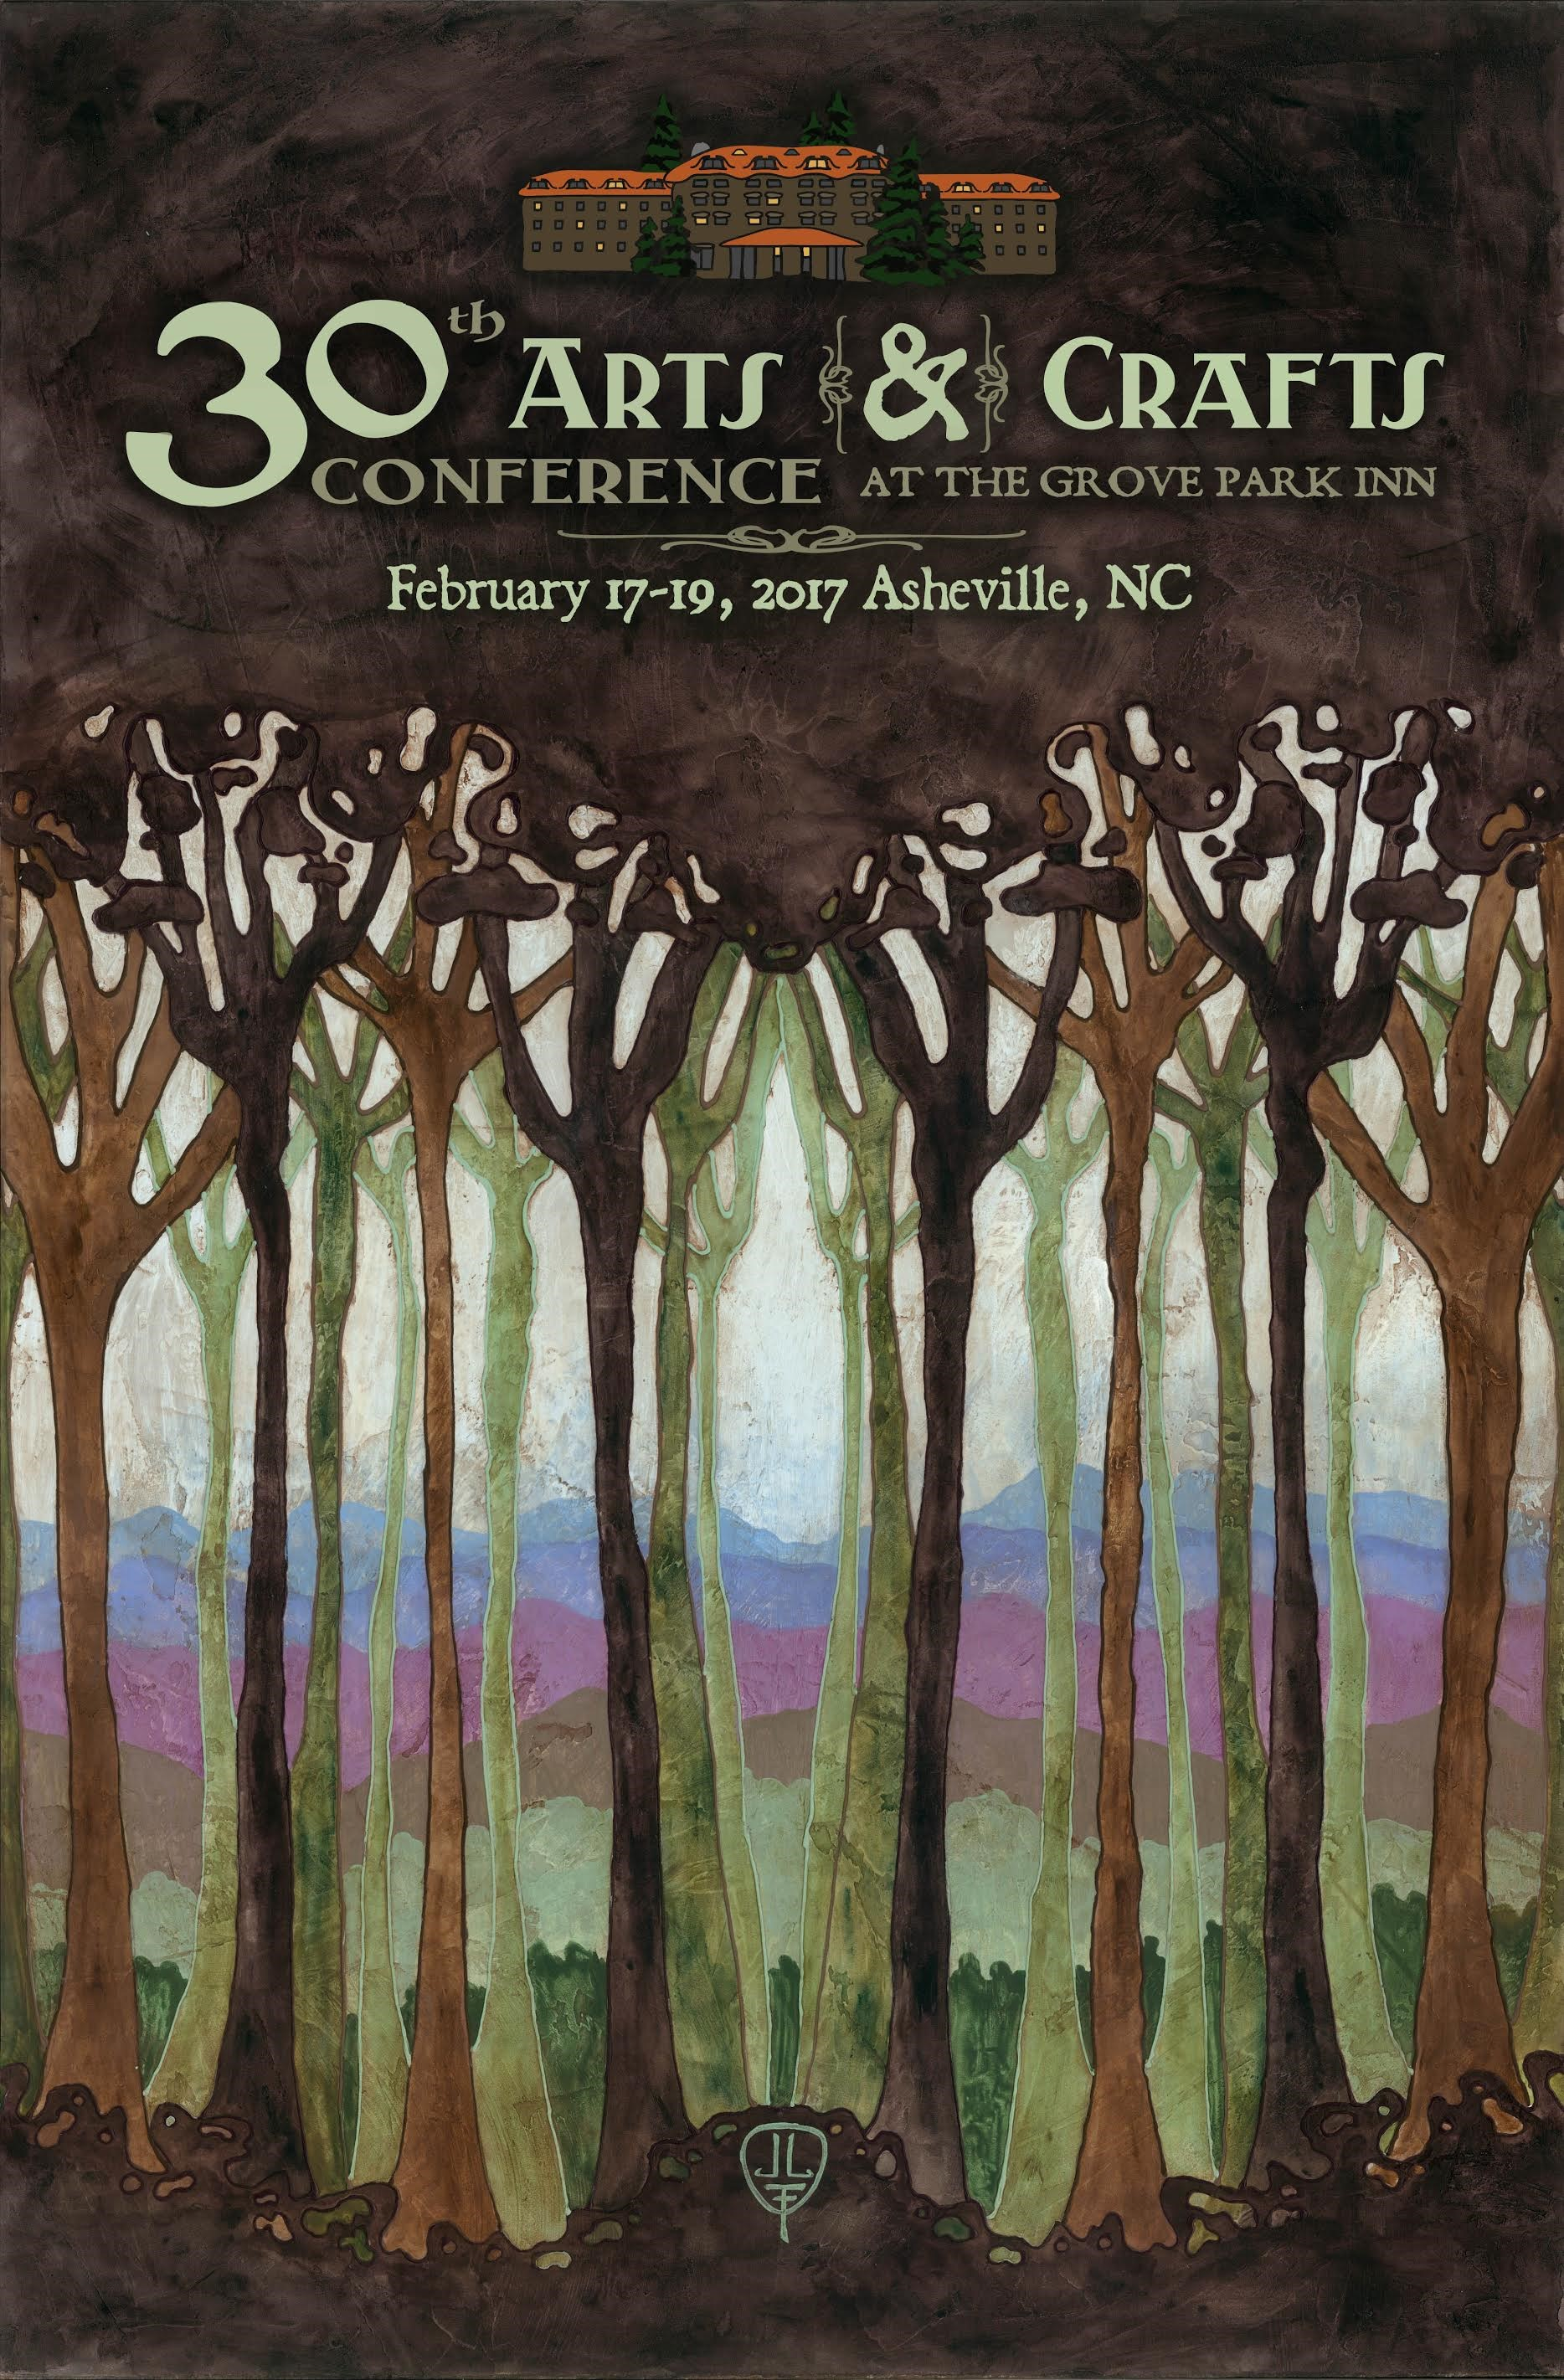 The 30th National Arts & Crafts Conference at the Grove Park Inn